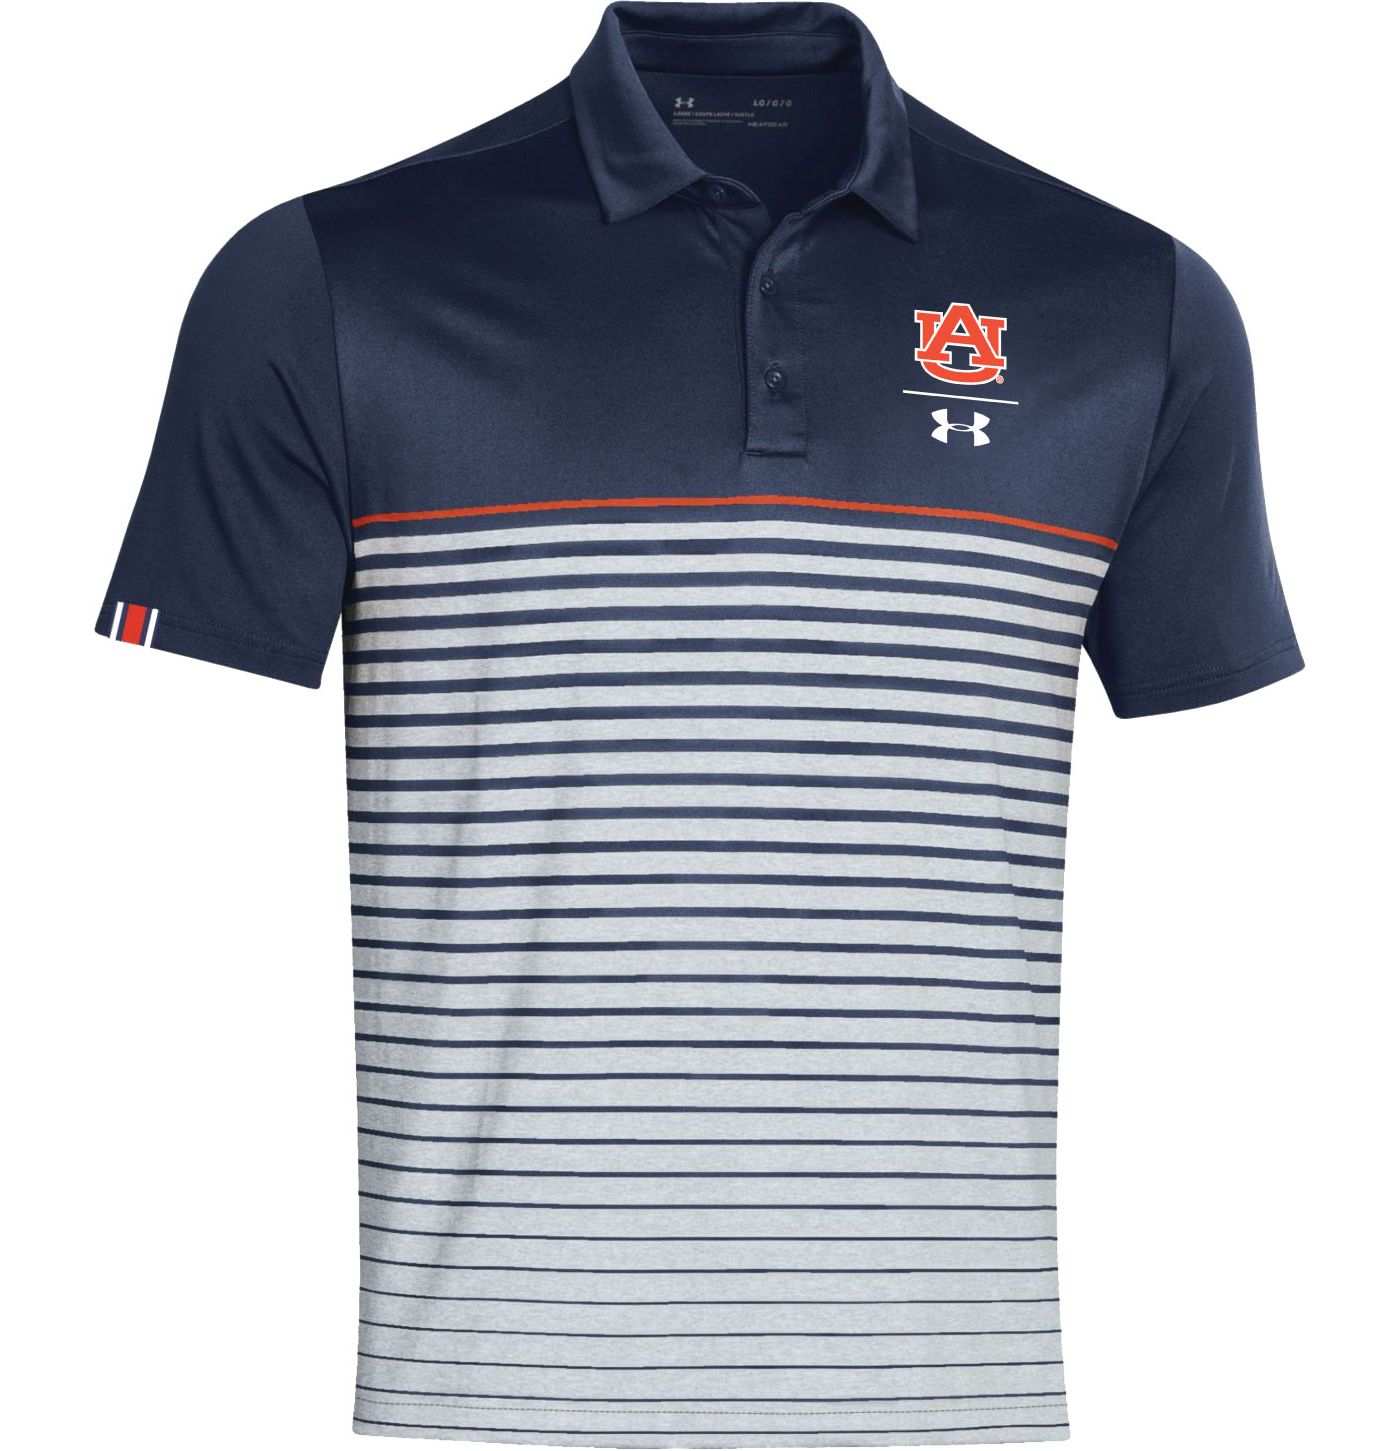 Under Armour Men's Auburn Tigers Blue Pinnacle Performance Sideline Polo